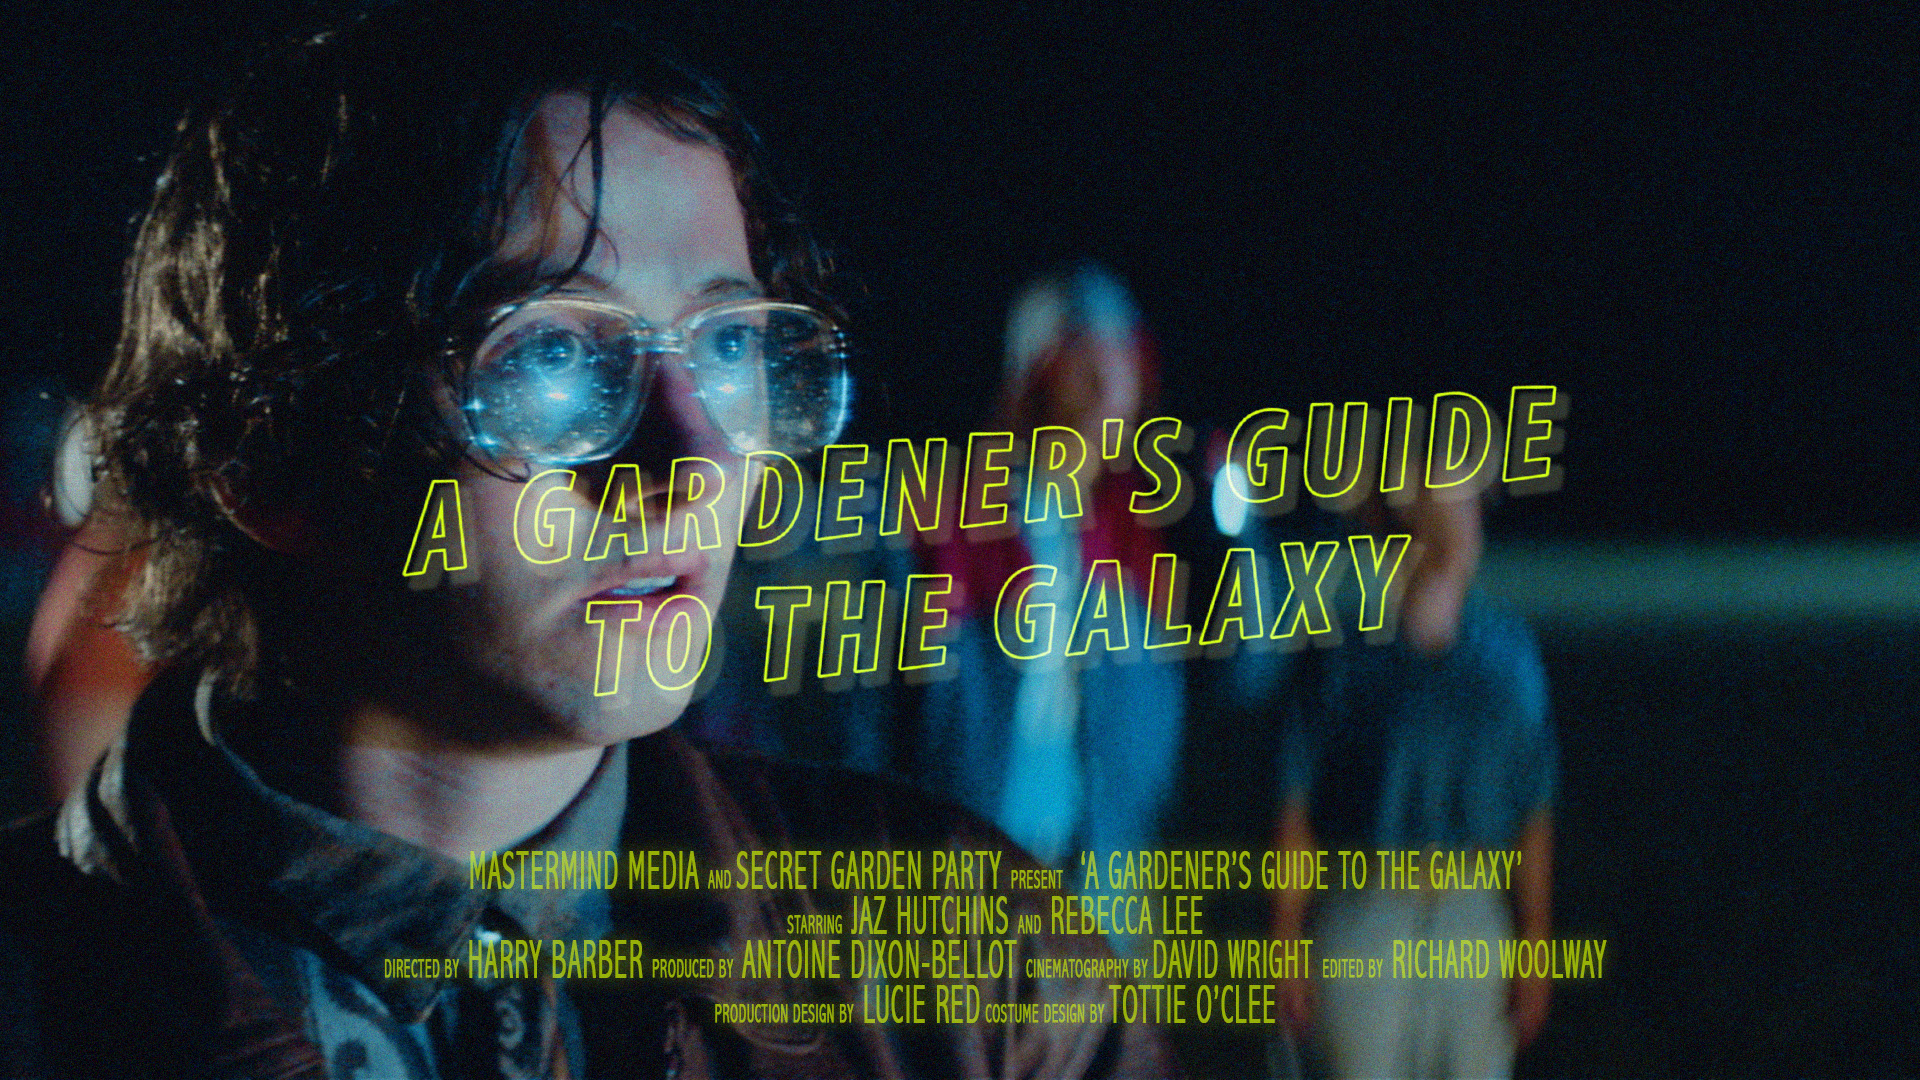 Secret Garden Party - A Gardener's Guide To The Galaxy